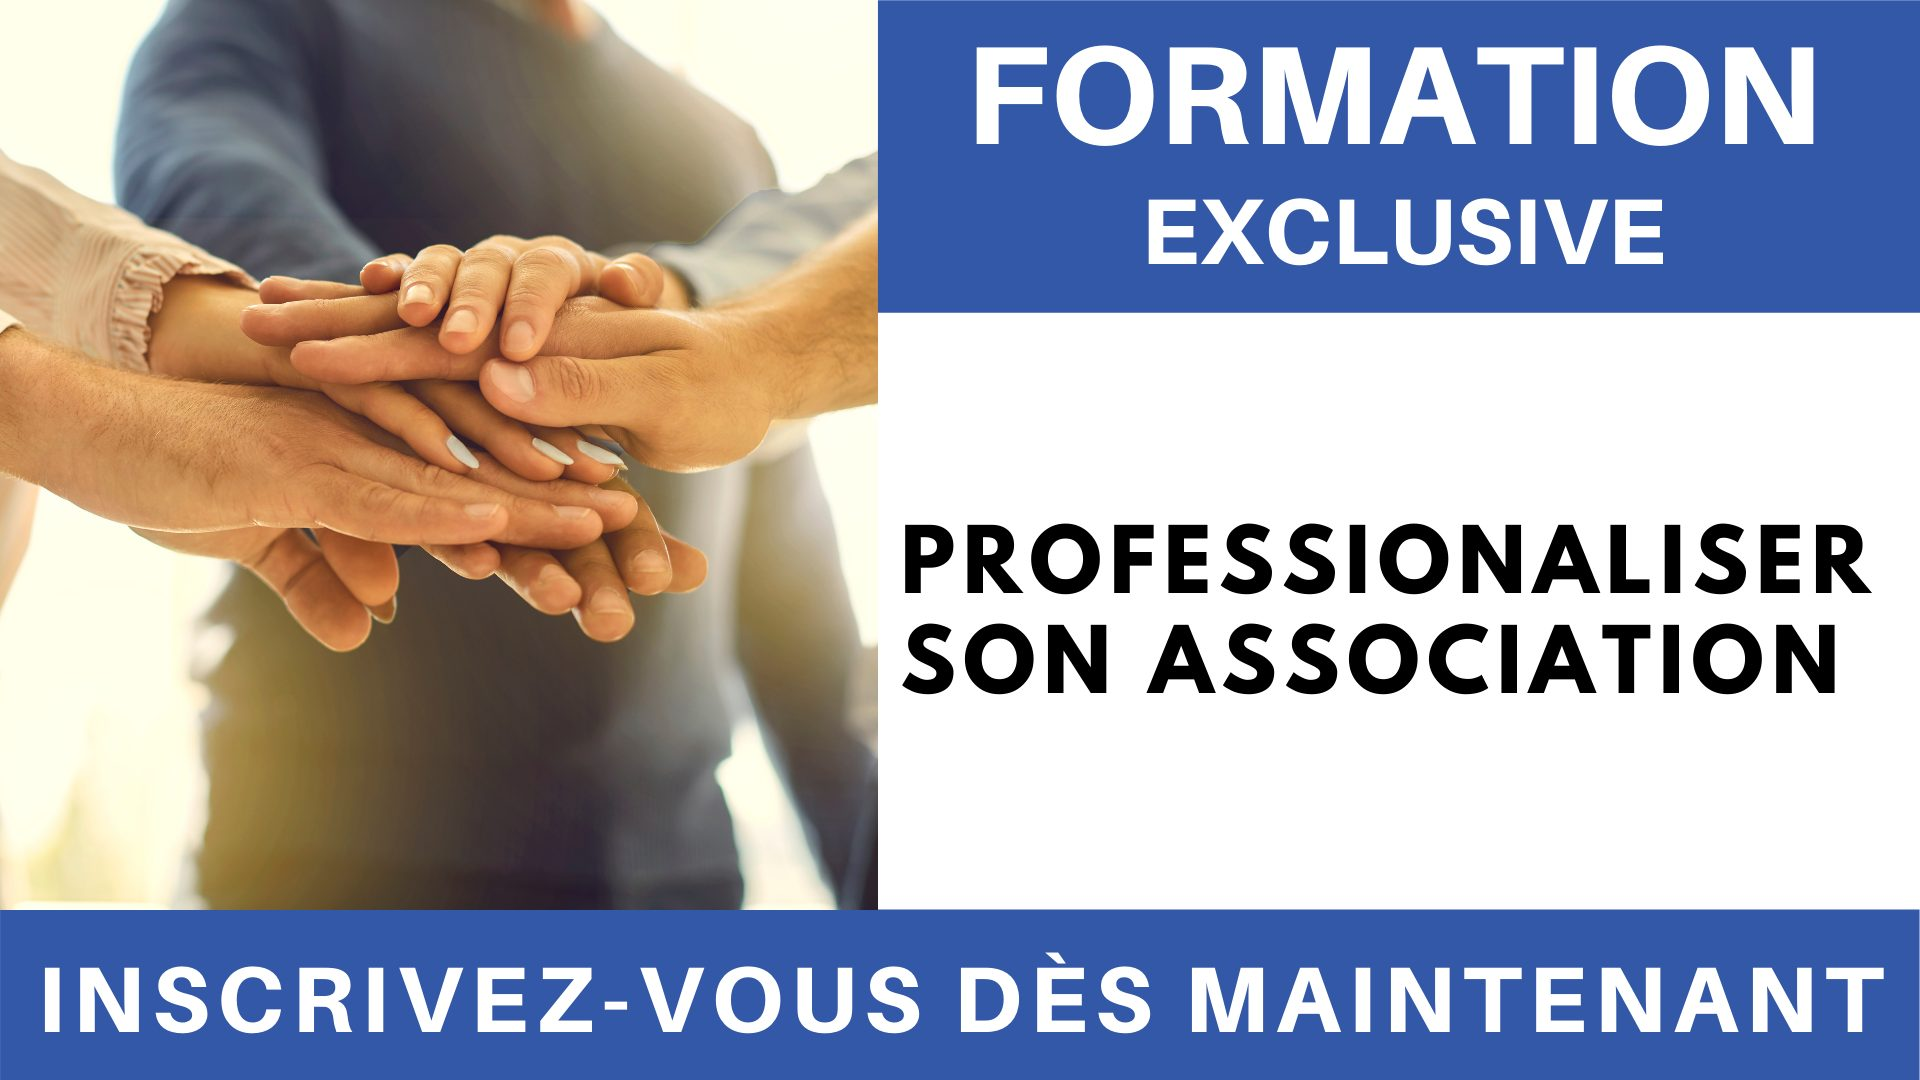 Formation Exclusive - Professionaliser son Association